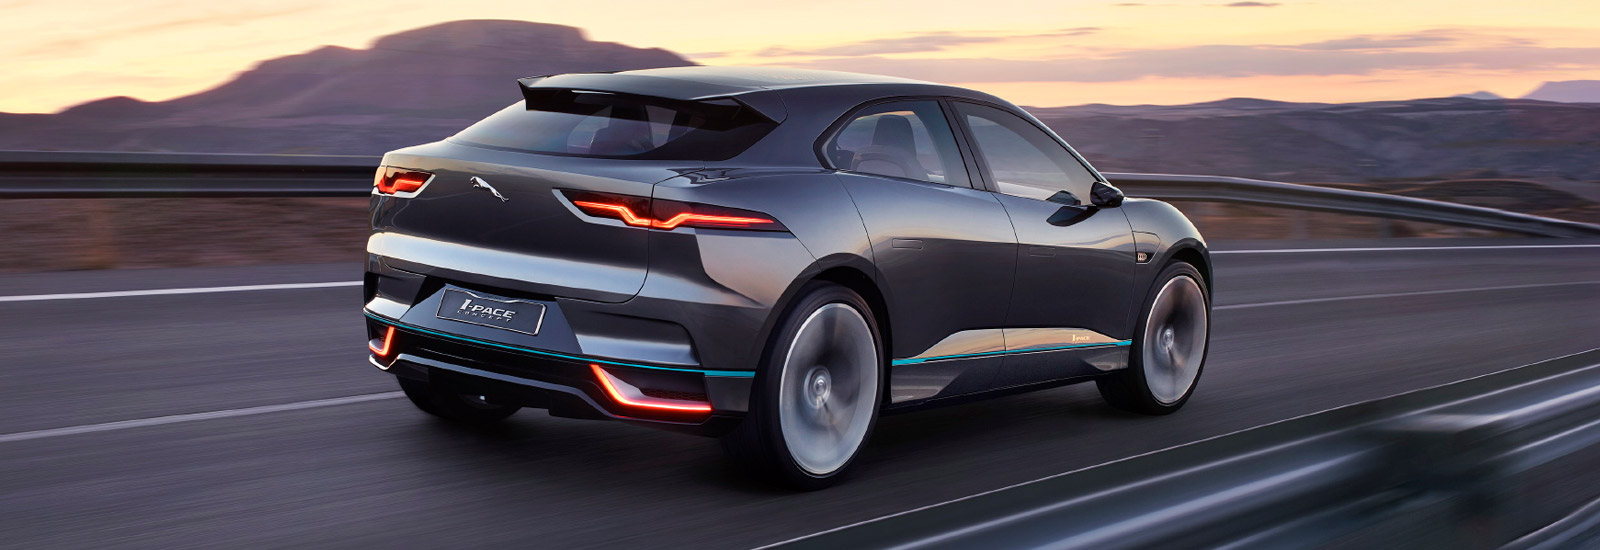 2018 jaguar cost. exellent 2018 jaguar ipace price and release date with 2018 jaguar cost